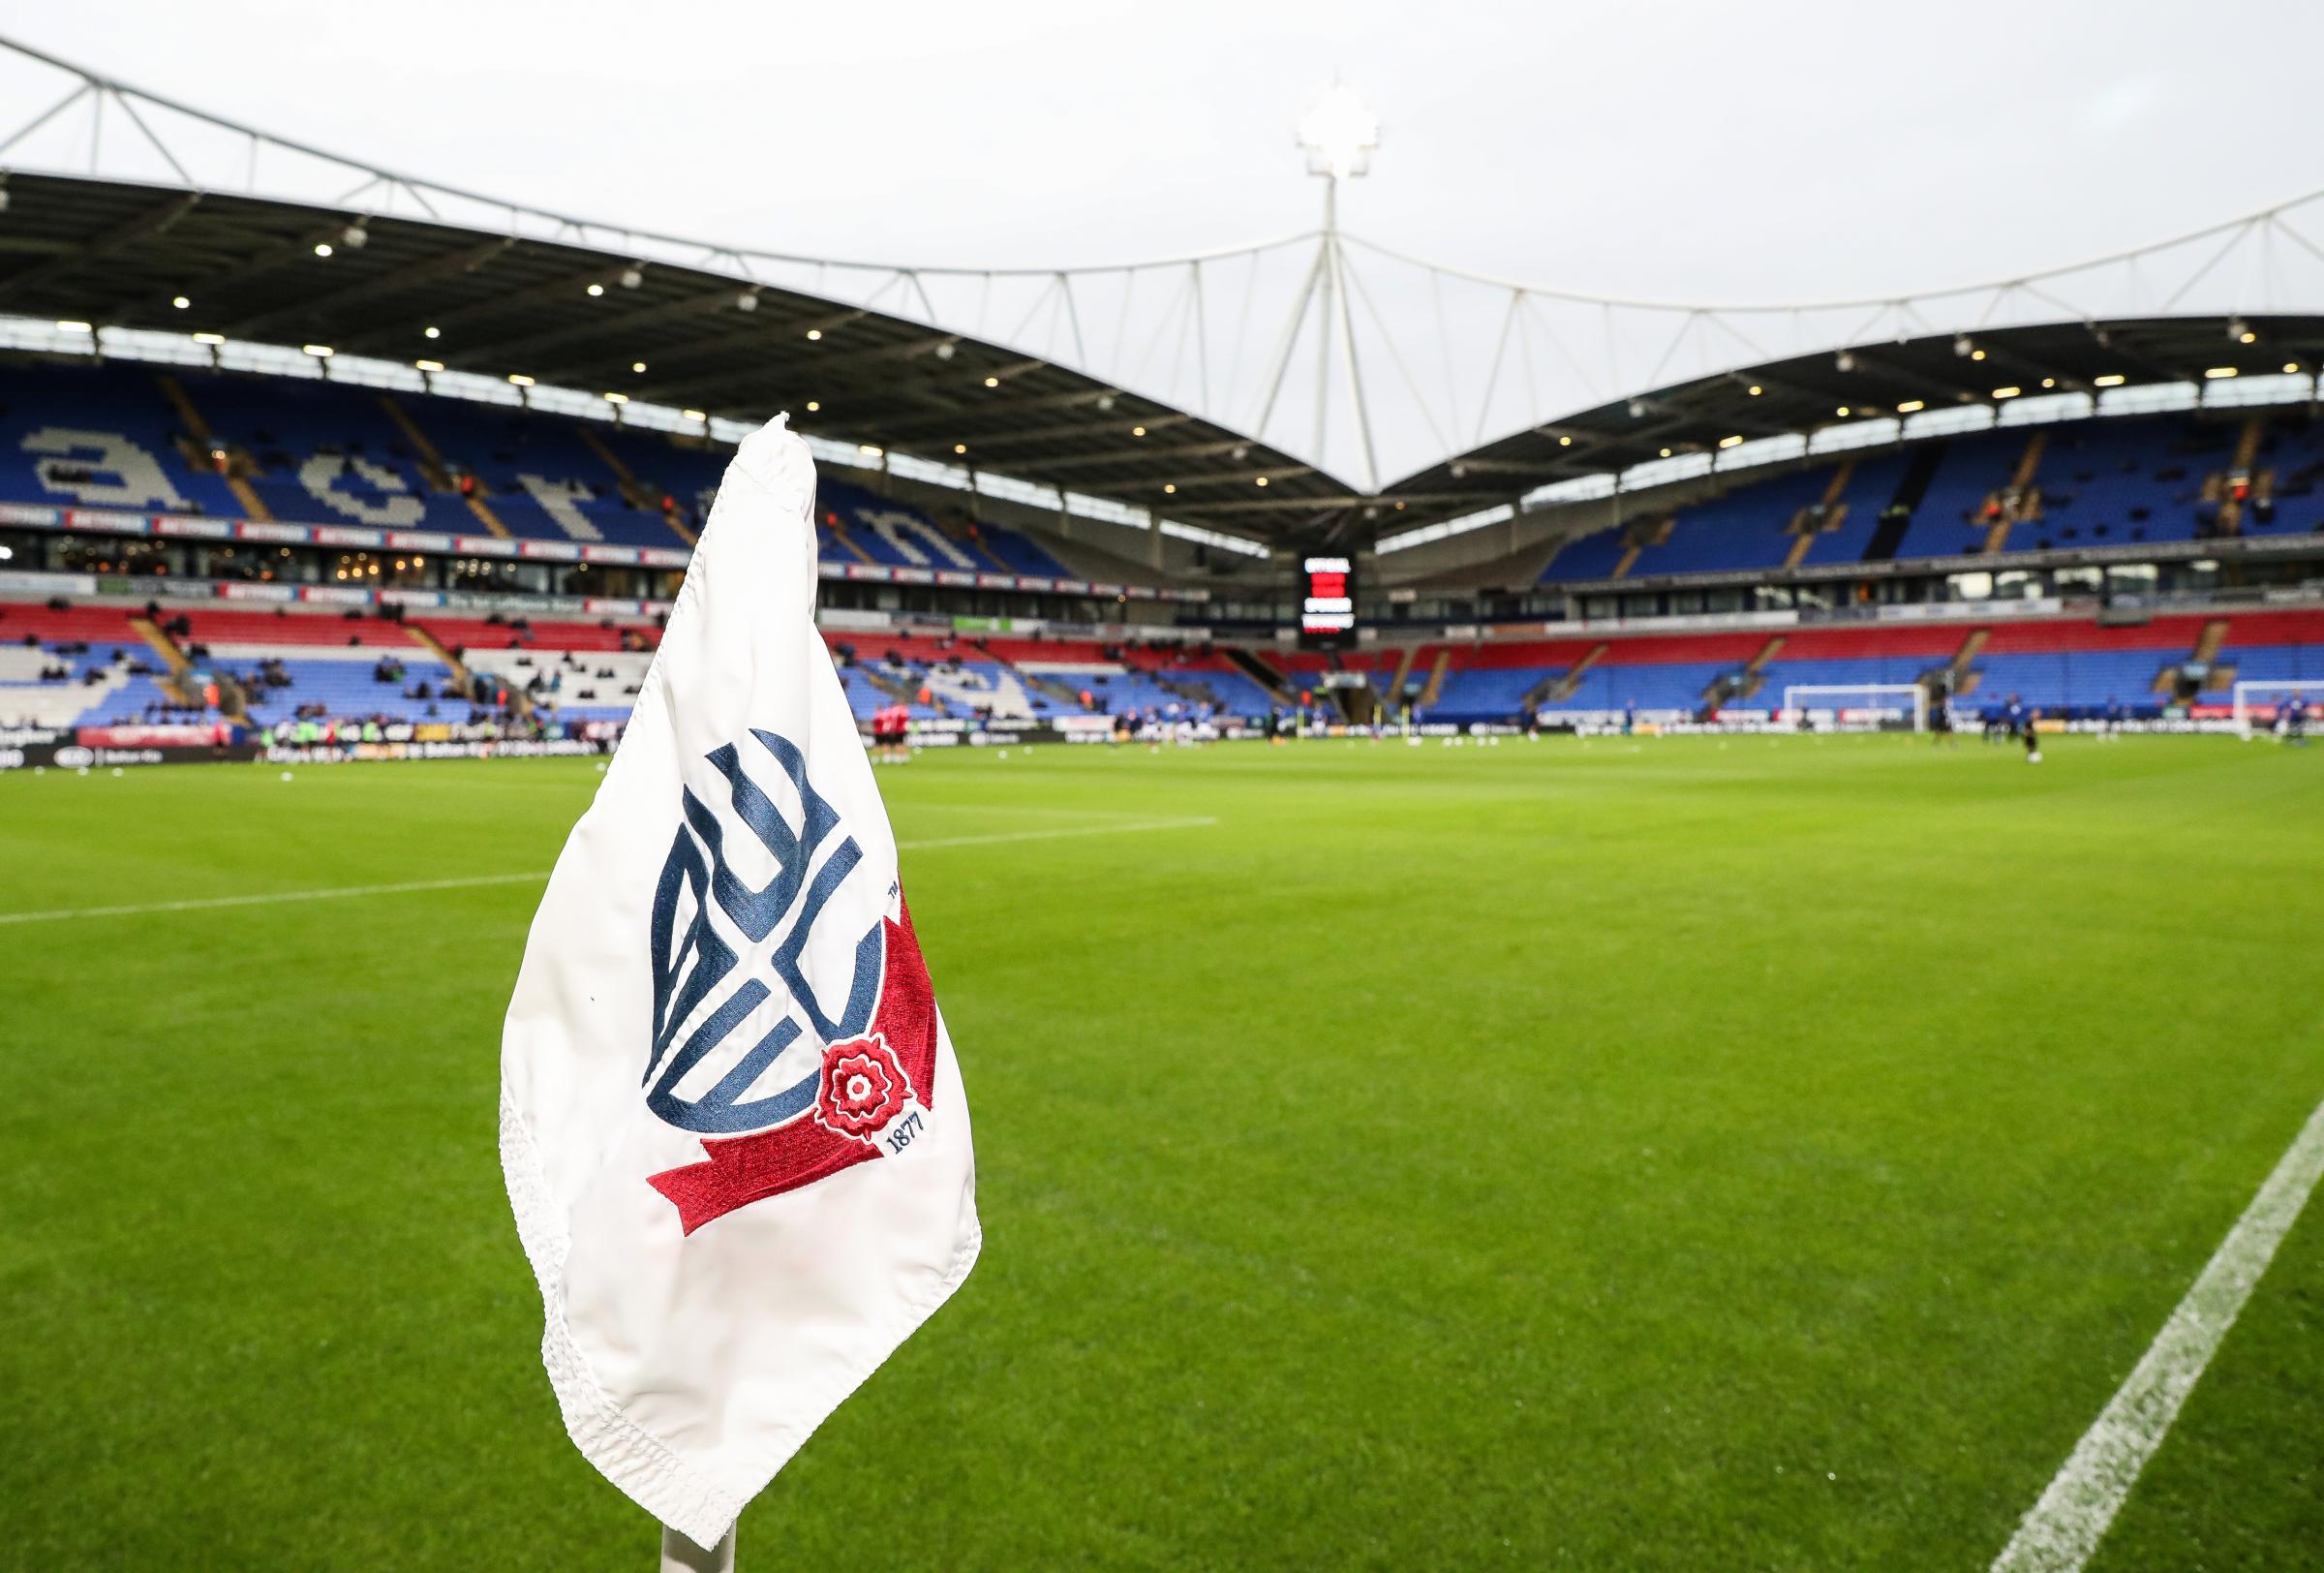 Bolton wanderers middle east investment network jpi investment company l.p.